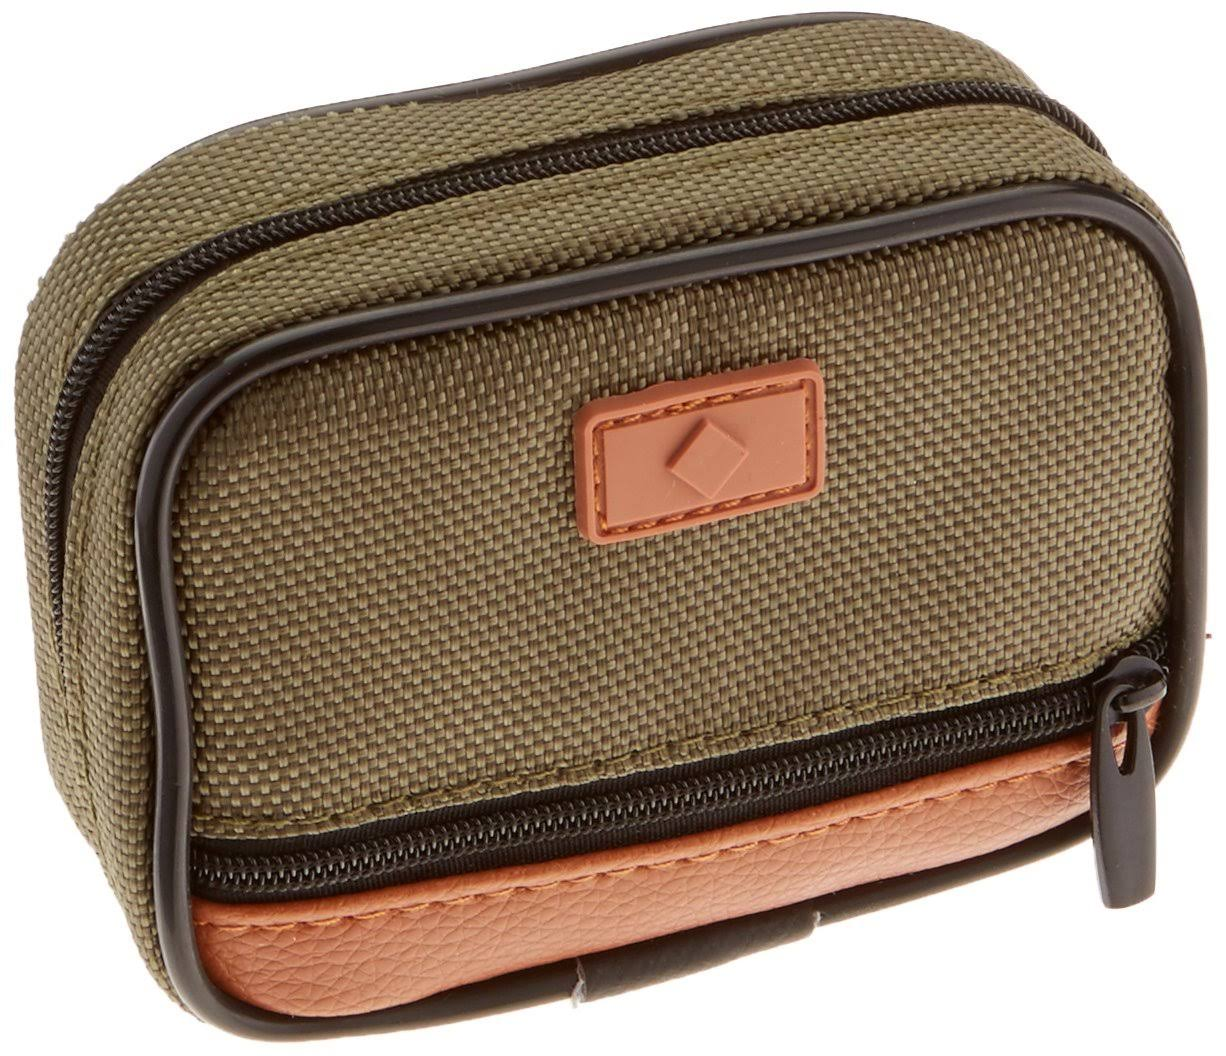 DM Merchandising Men's 7-day Pill Box Case - Green